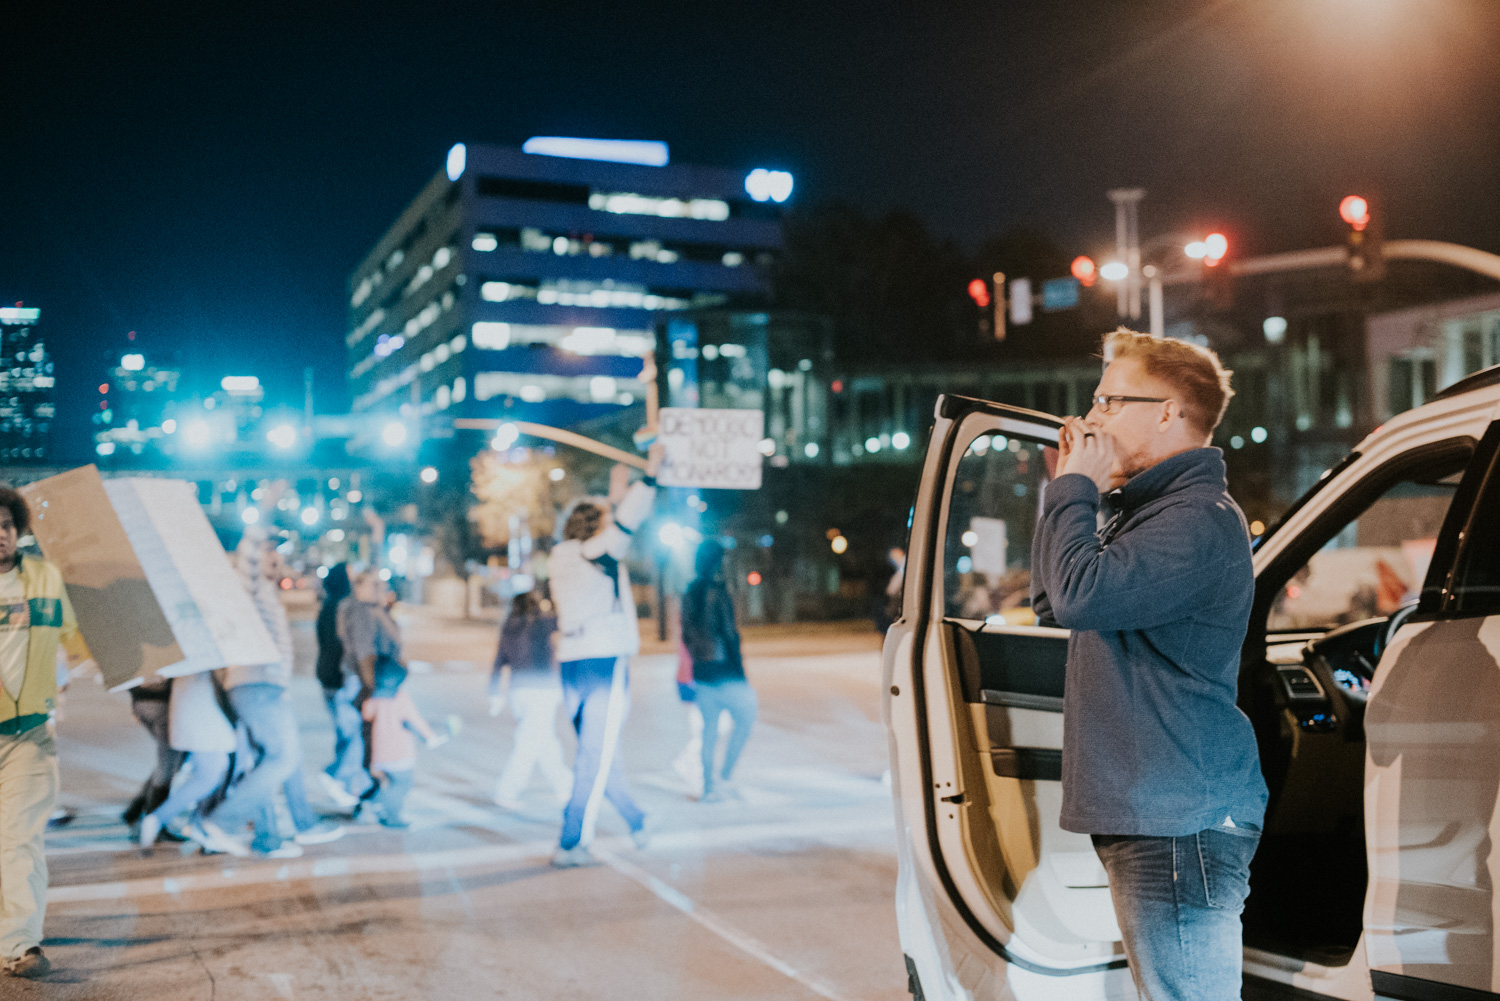 A man hops out of his car in support for the Love Trumps Hate protesters as they cross an intersection in downtown Kansas City.